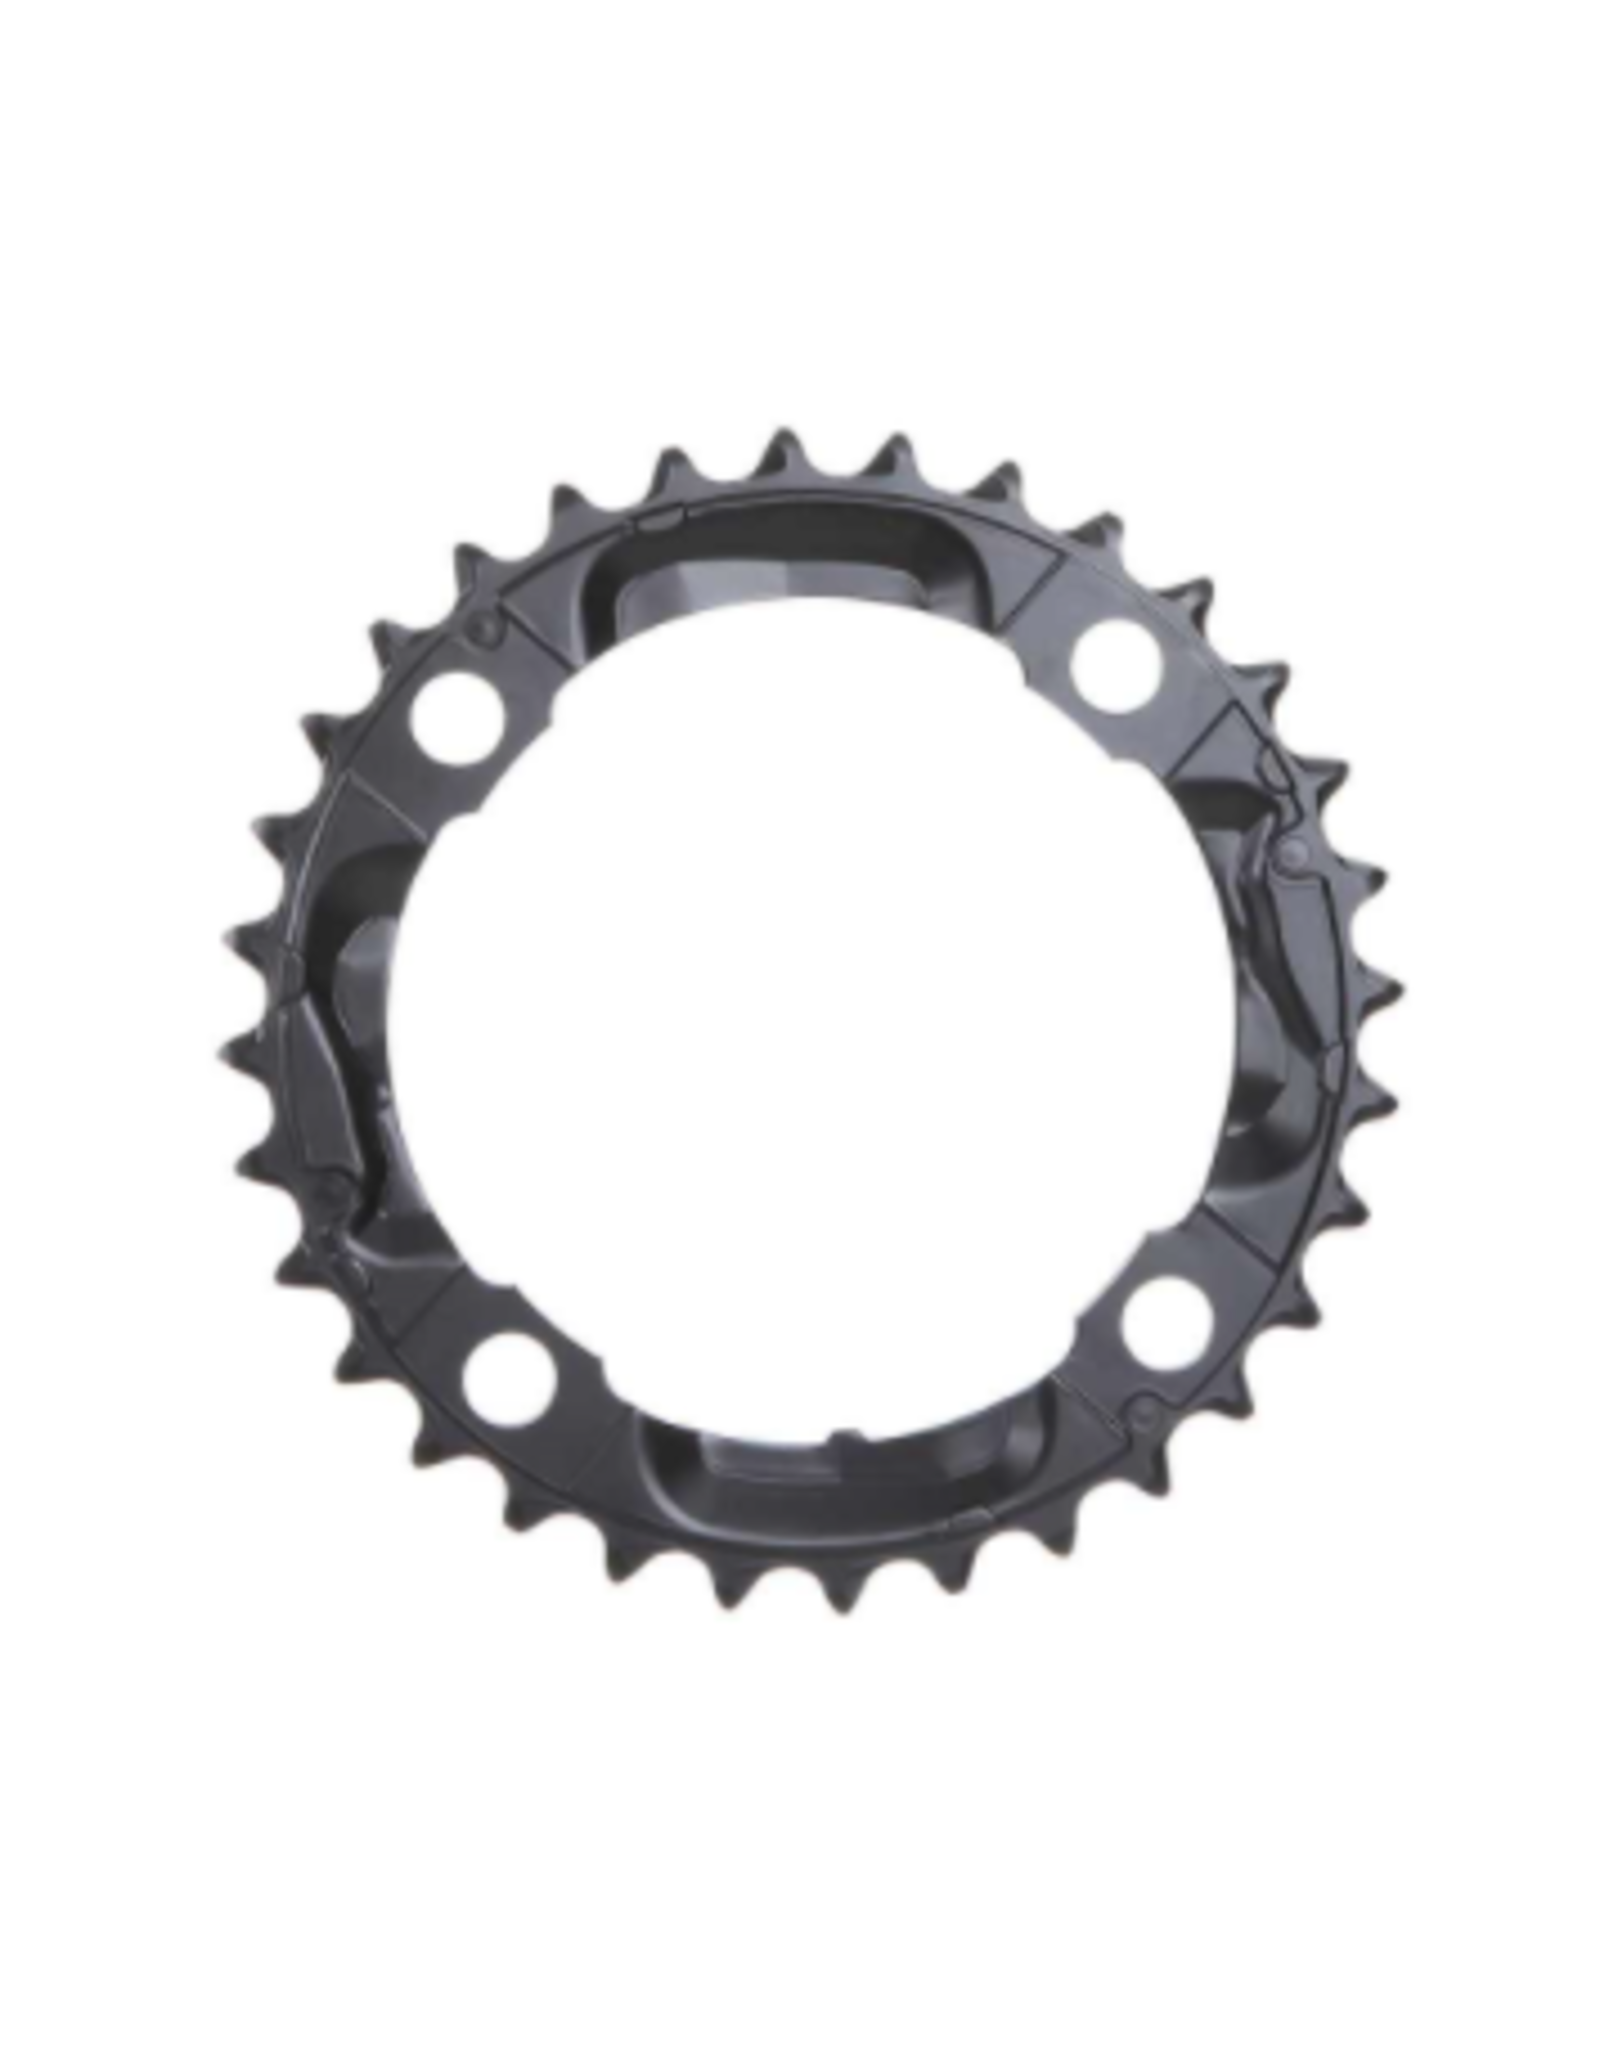 Shimano Shimano, Y1LD98090, 36T, 9sp, BCD: 104mm, 4 Bolt, Deore FC-M590, Middle Chainring, For 26/36/48, Aluminum, Black